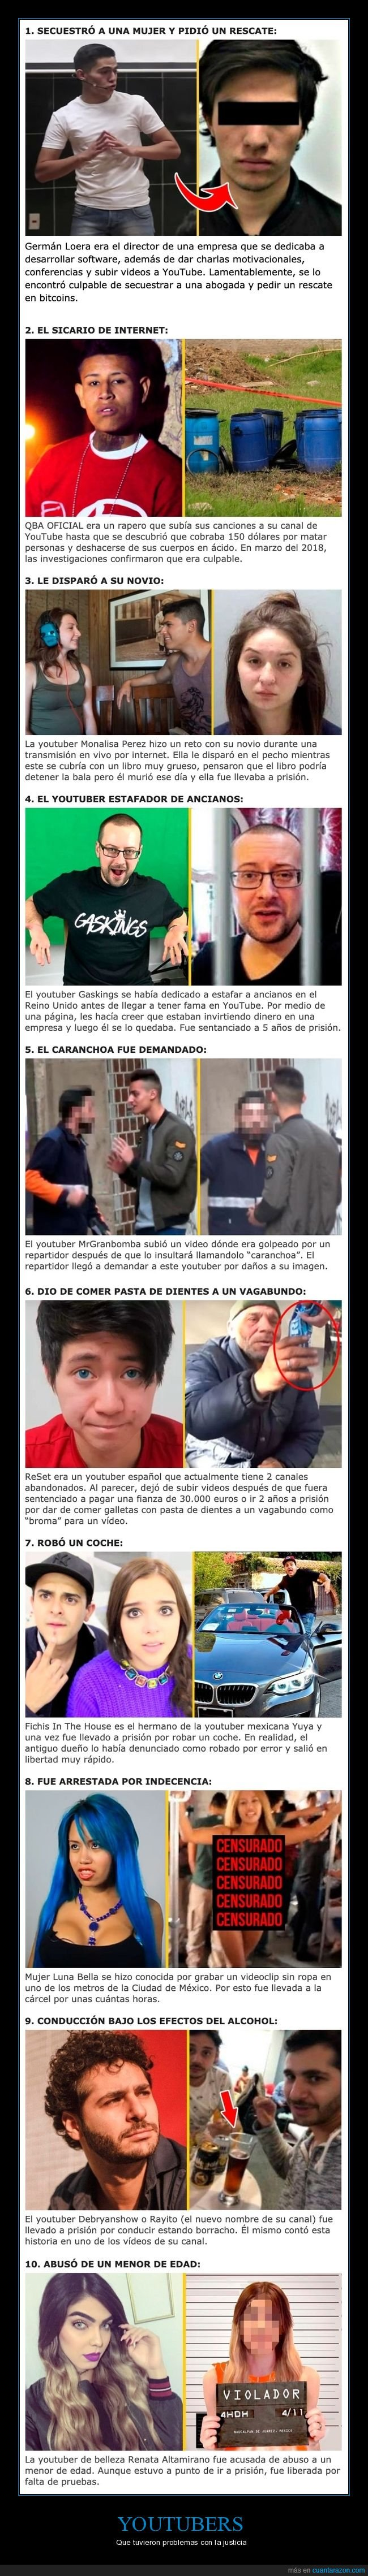 justicia,youtubers